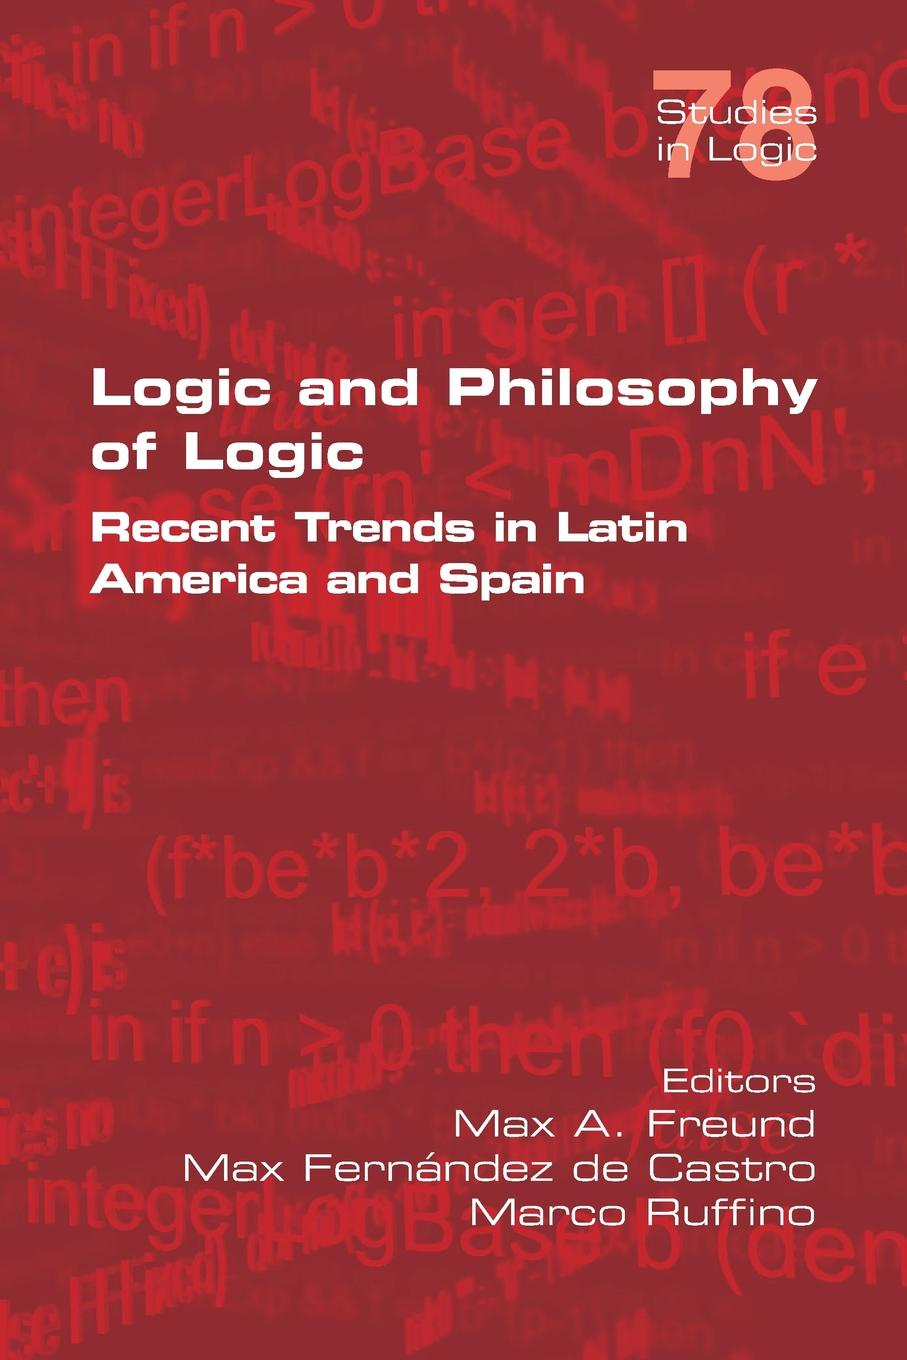 william irwin ender s game and philosophy the logic gate is down Logic and Philosophy of Logic. Recent Trends in Latin America and Spain